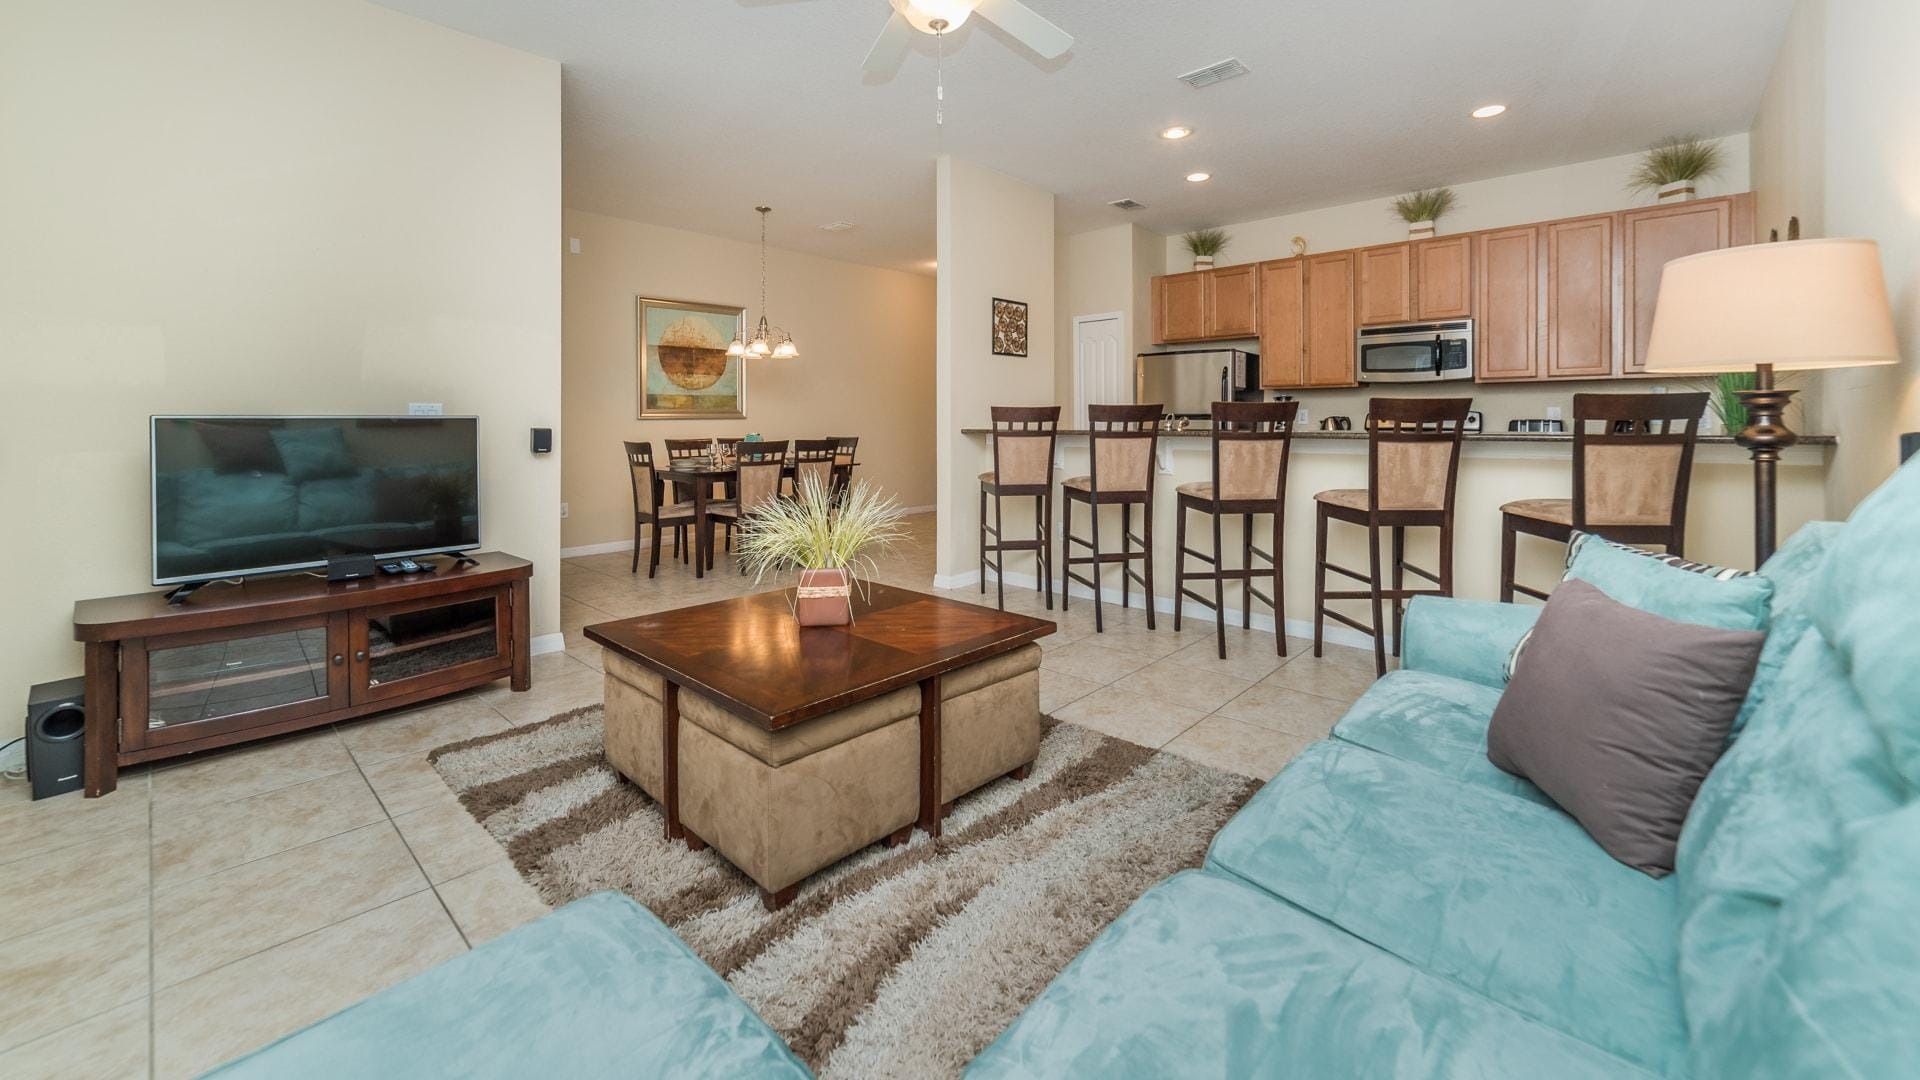 Property Image 2 - Beautiful 4 Bedroom Townhome for Family Fun